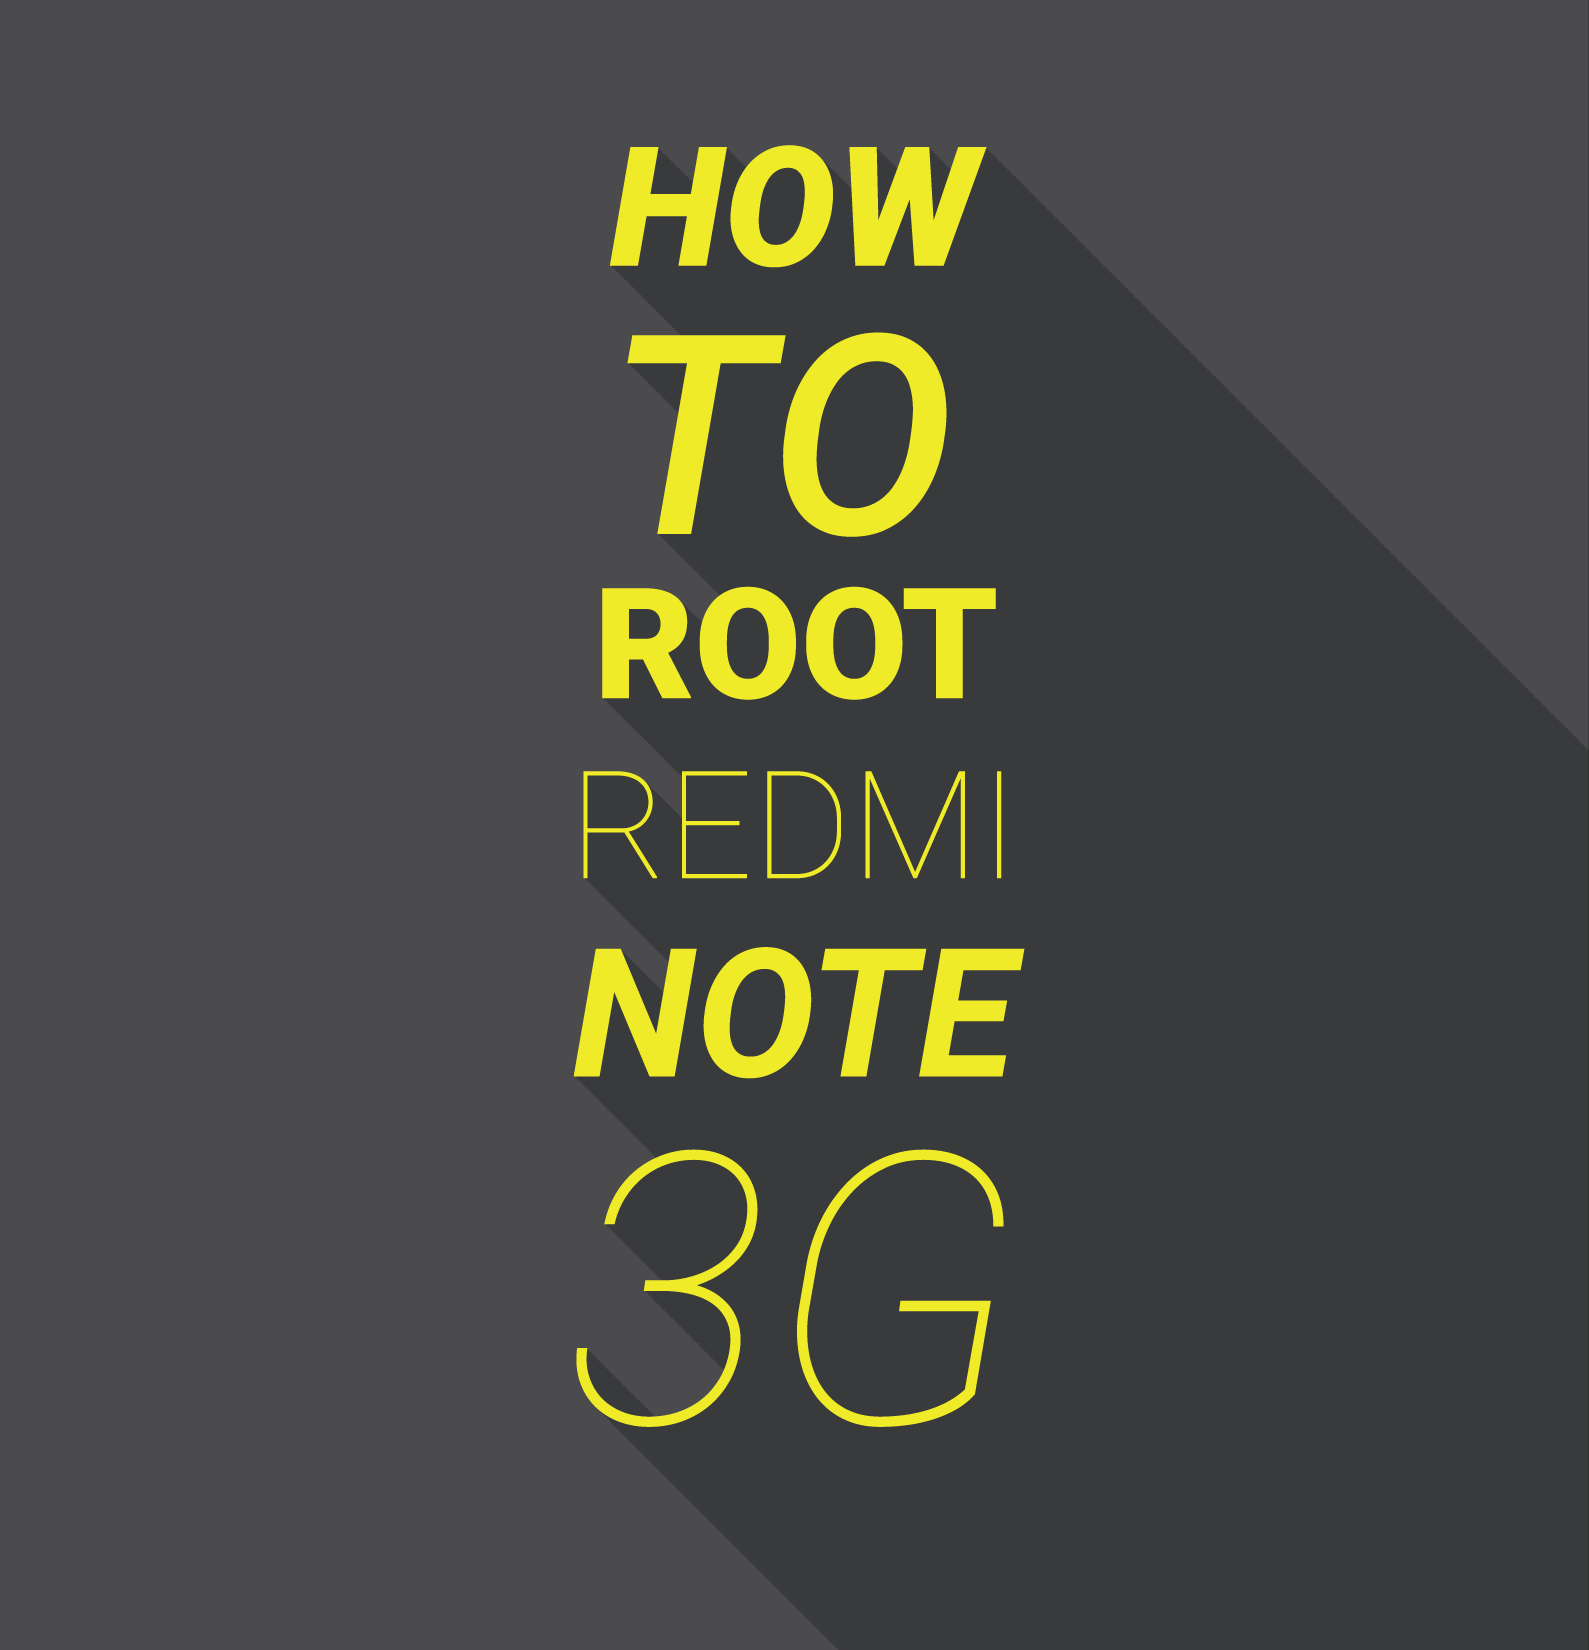 Rooting Xiaomi Smartphones : How To Root Xiaomi Redmi Note 4G